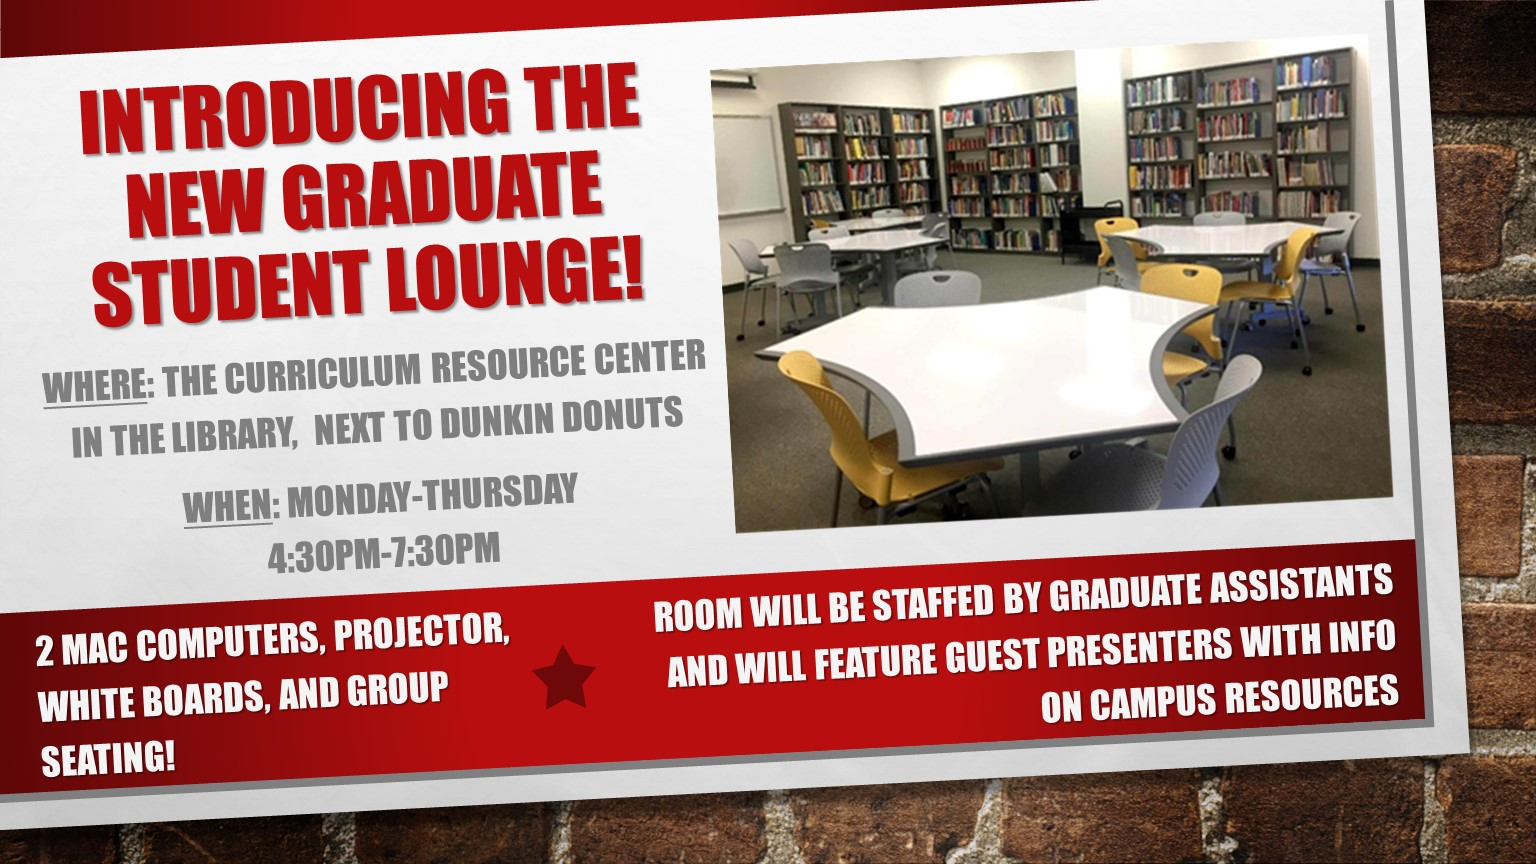 "Advertisement for new Graduate Student Lounge.  ""Where: Curriculum resource center in the library, next to Dunkin Donuts.  Open Monday - Thursday 4:30 PM - 7:30 PM.  Two mac computers, projector, whiteboards, and group seating.  Room will be staffed by graduate assistants and feature guest presenters."""